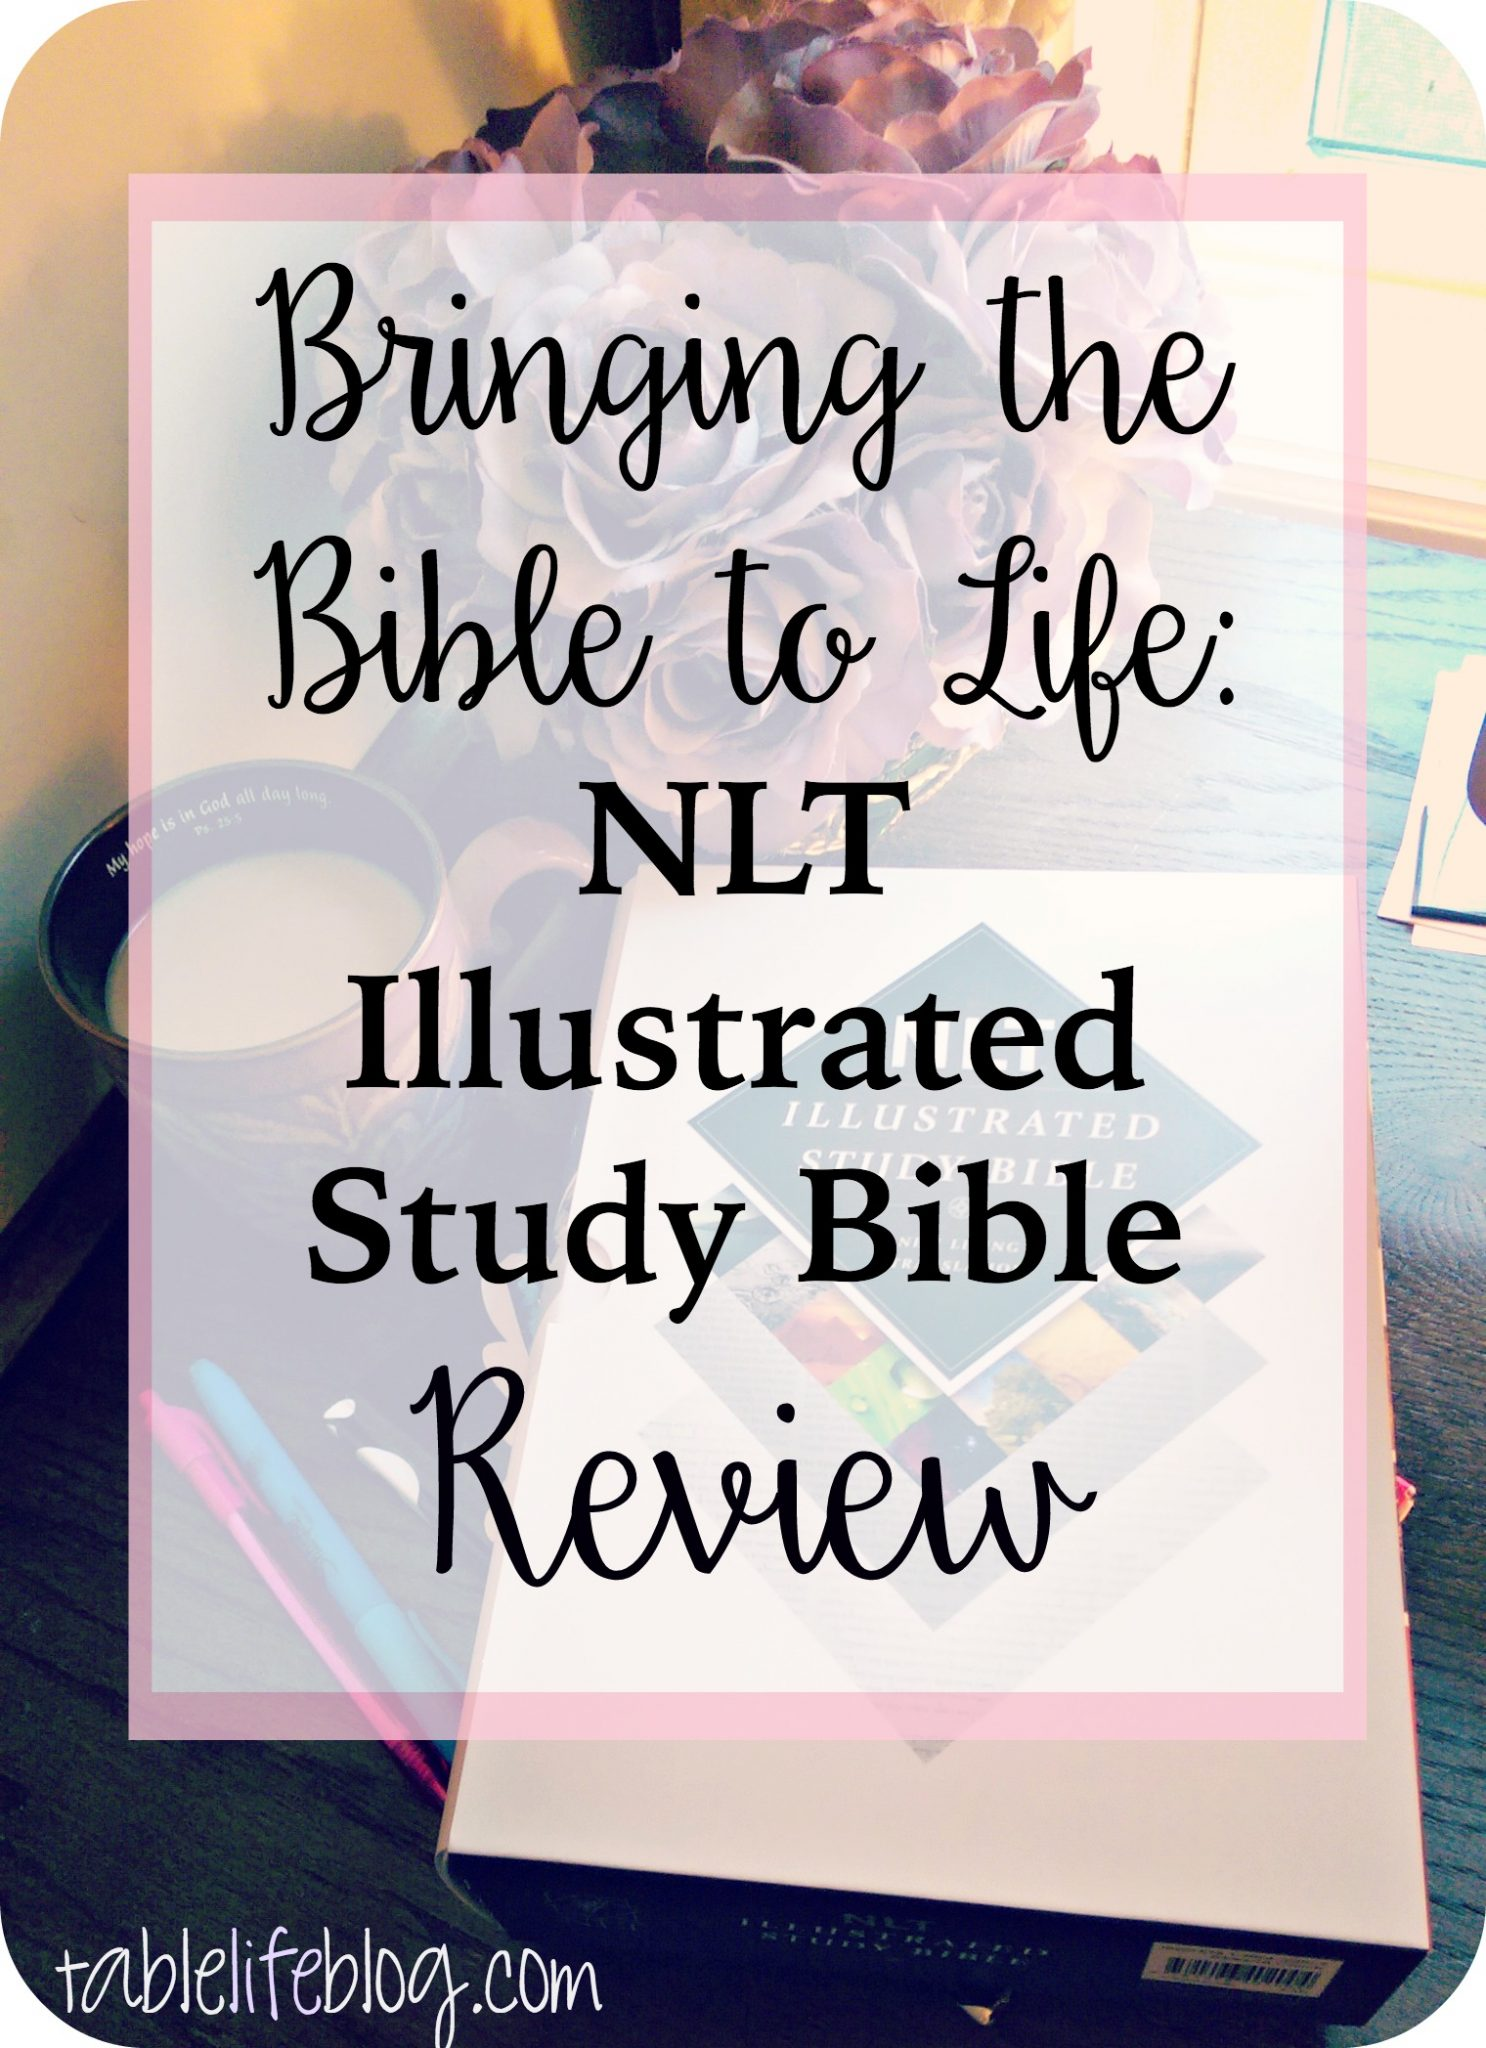 NLT Illustrated Study Bible Review